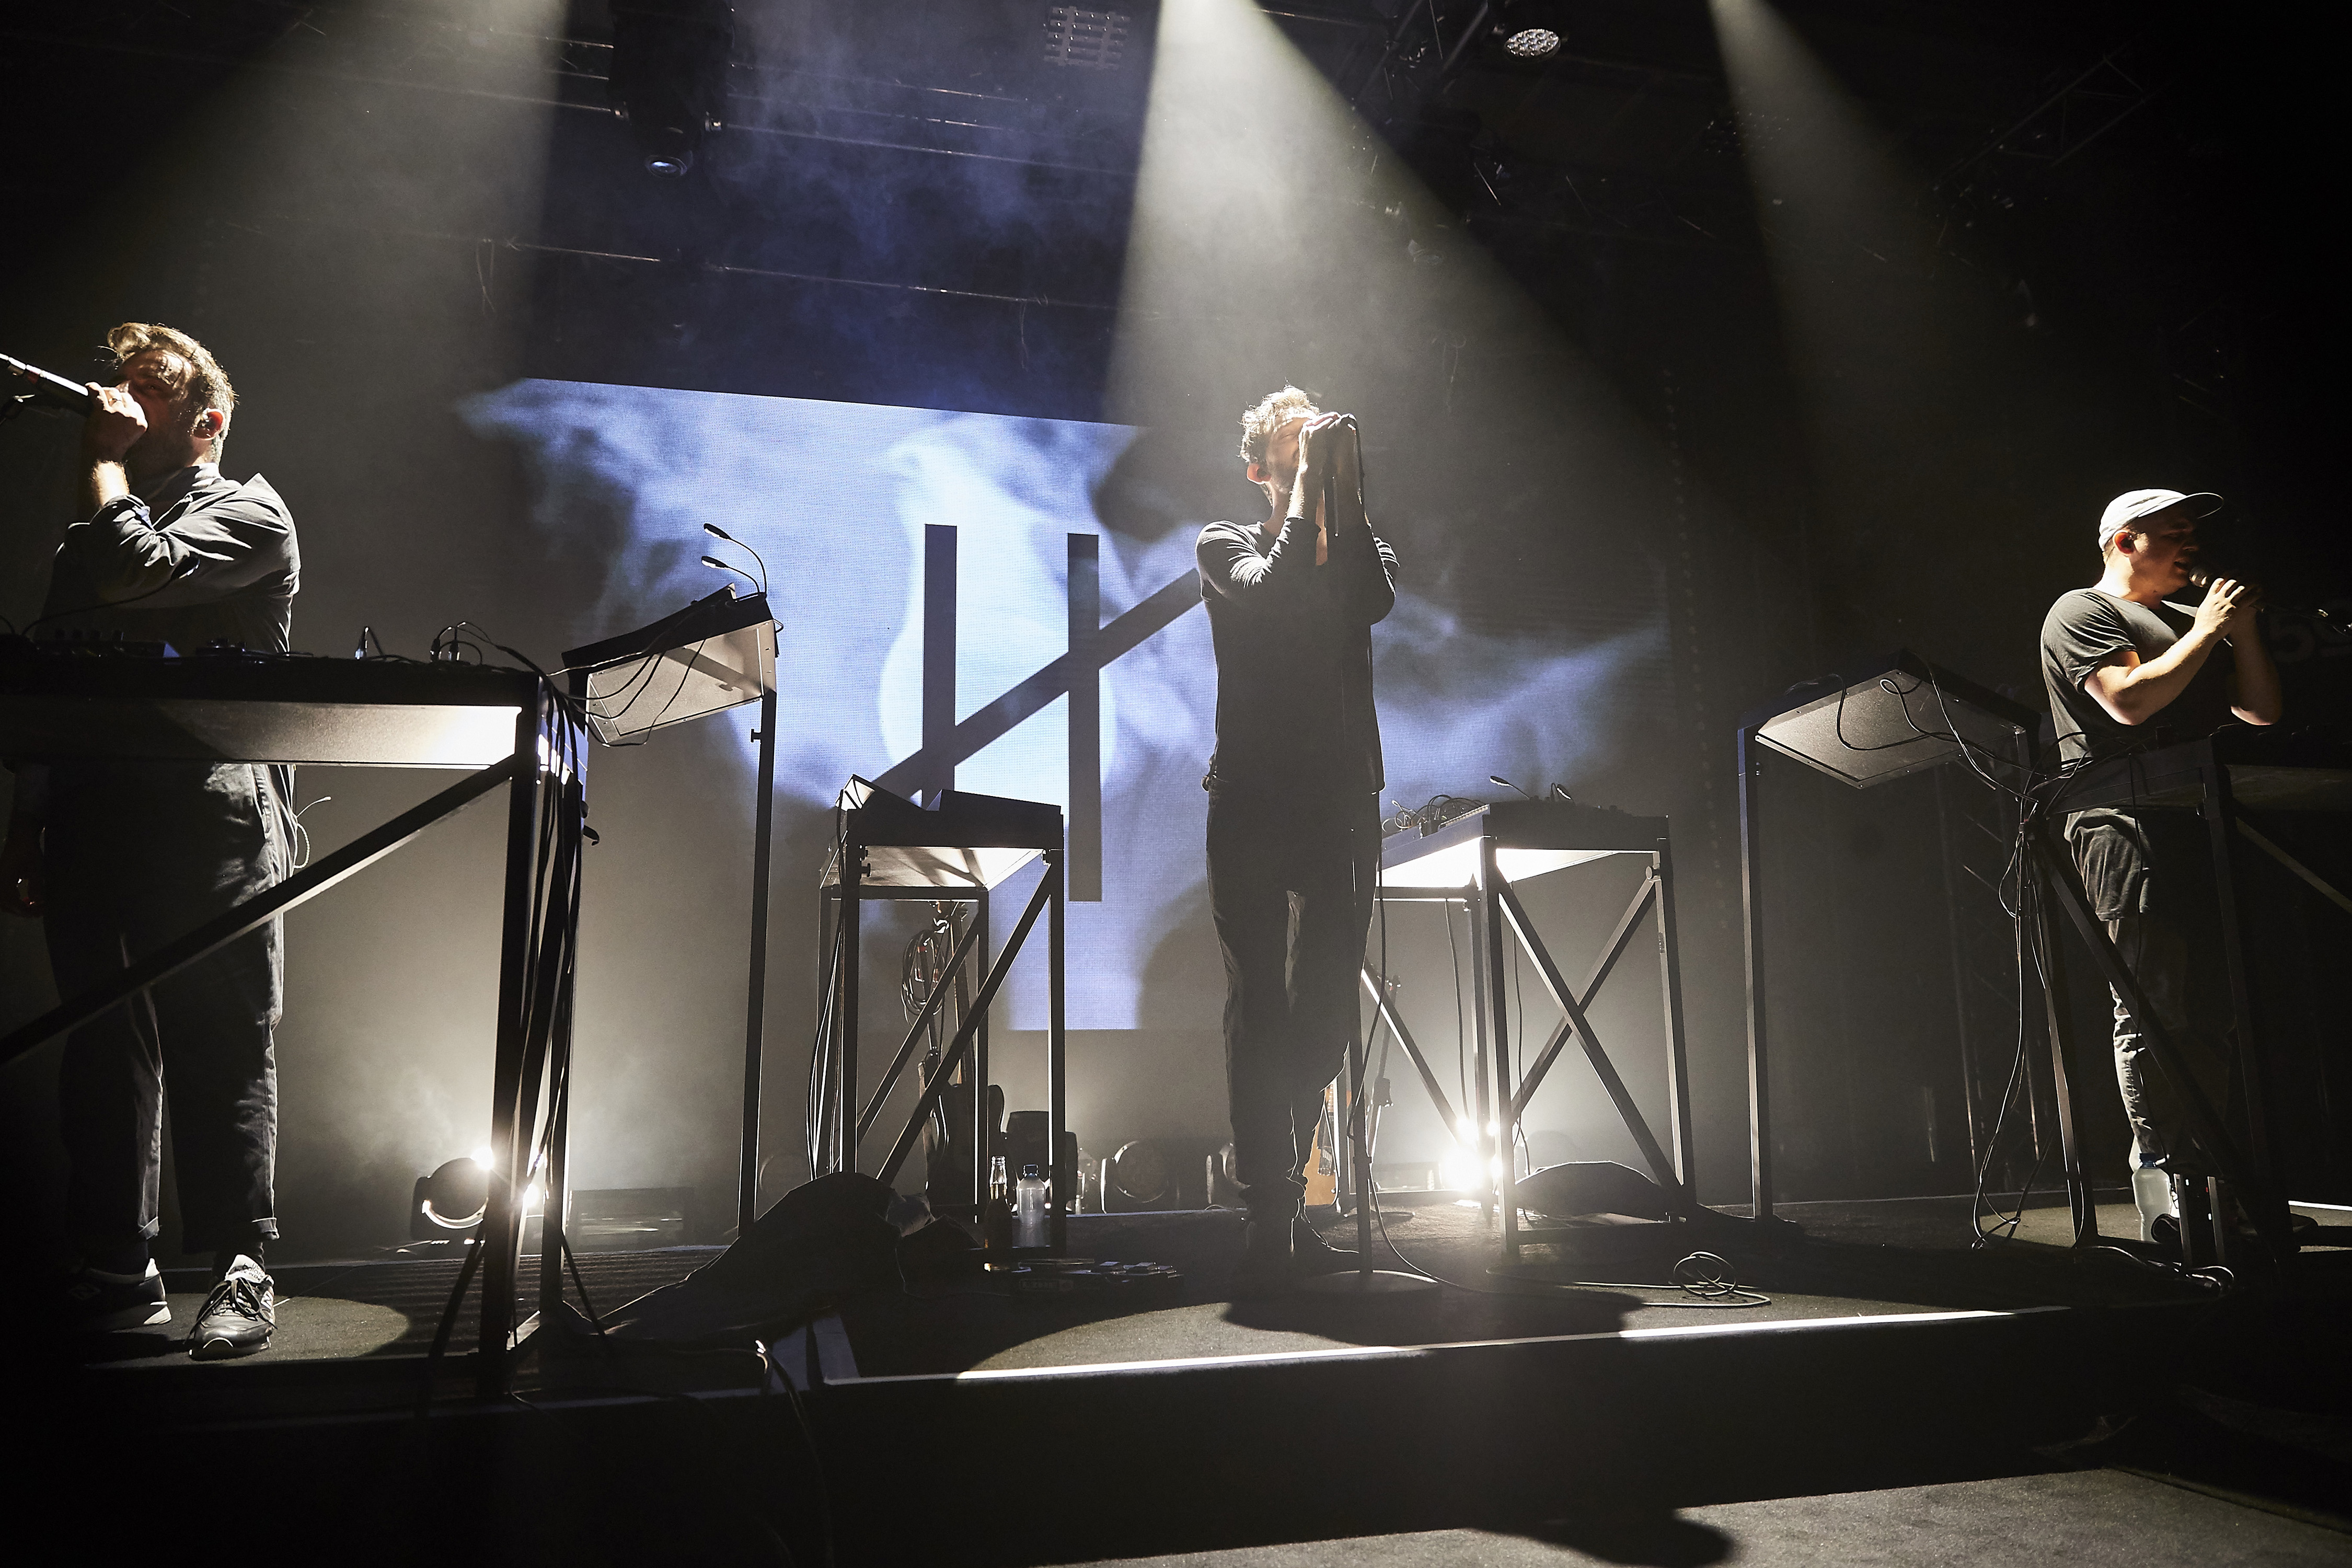 http://www.montreuxjazz.com/sites/default/files/photos/MJF_20160702_LAB_Moderat_DanielBalmat_DL0I4068.jpg